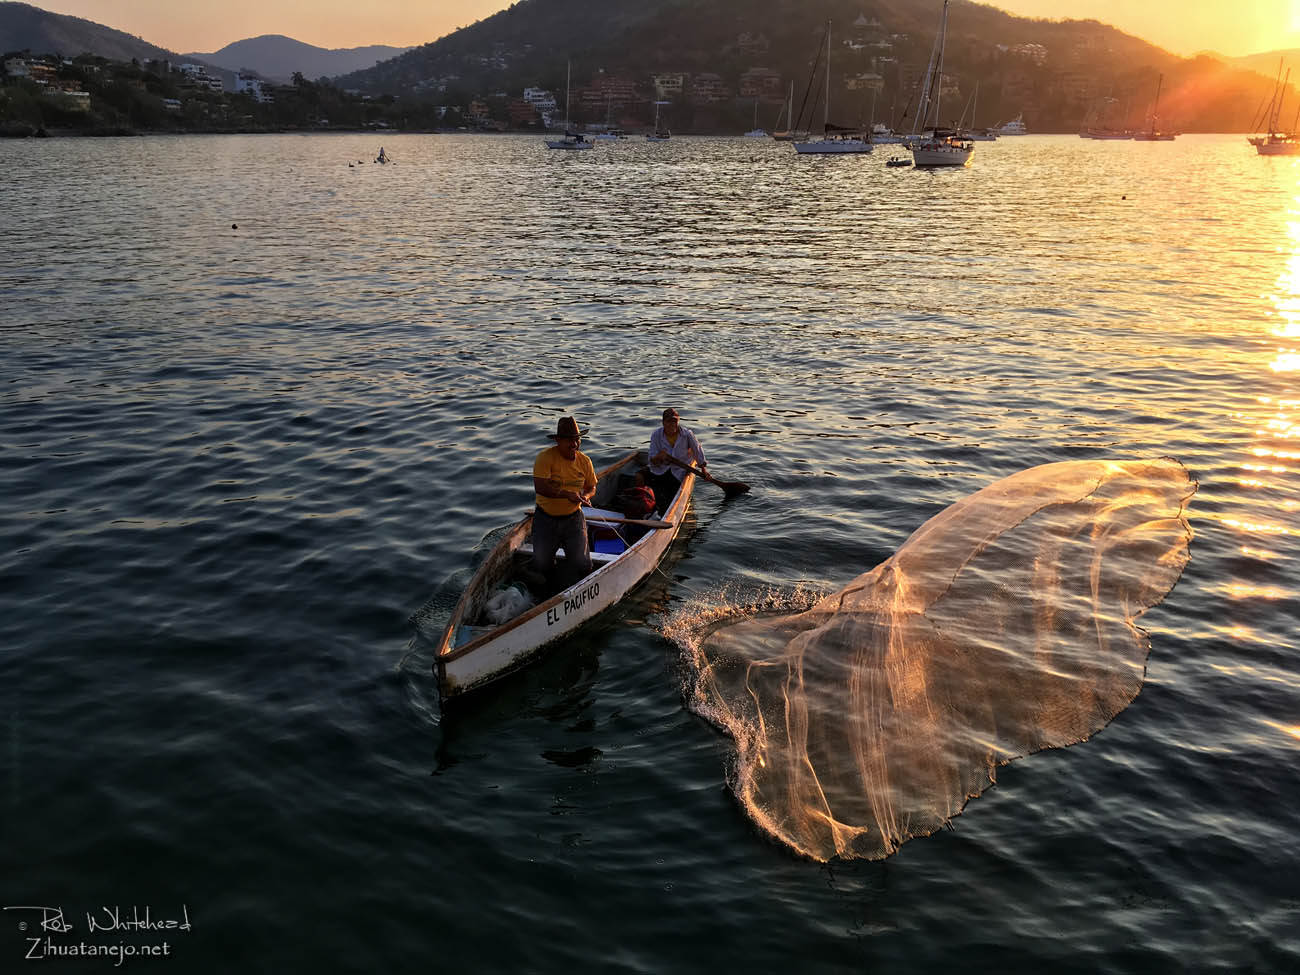 Fisherman casts net from canoe, Zihuatanejo